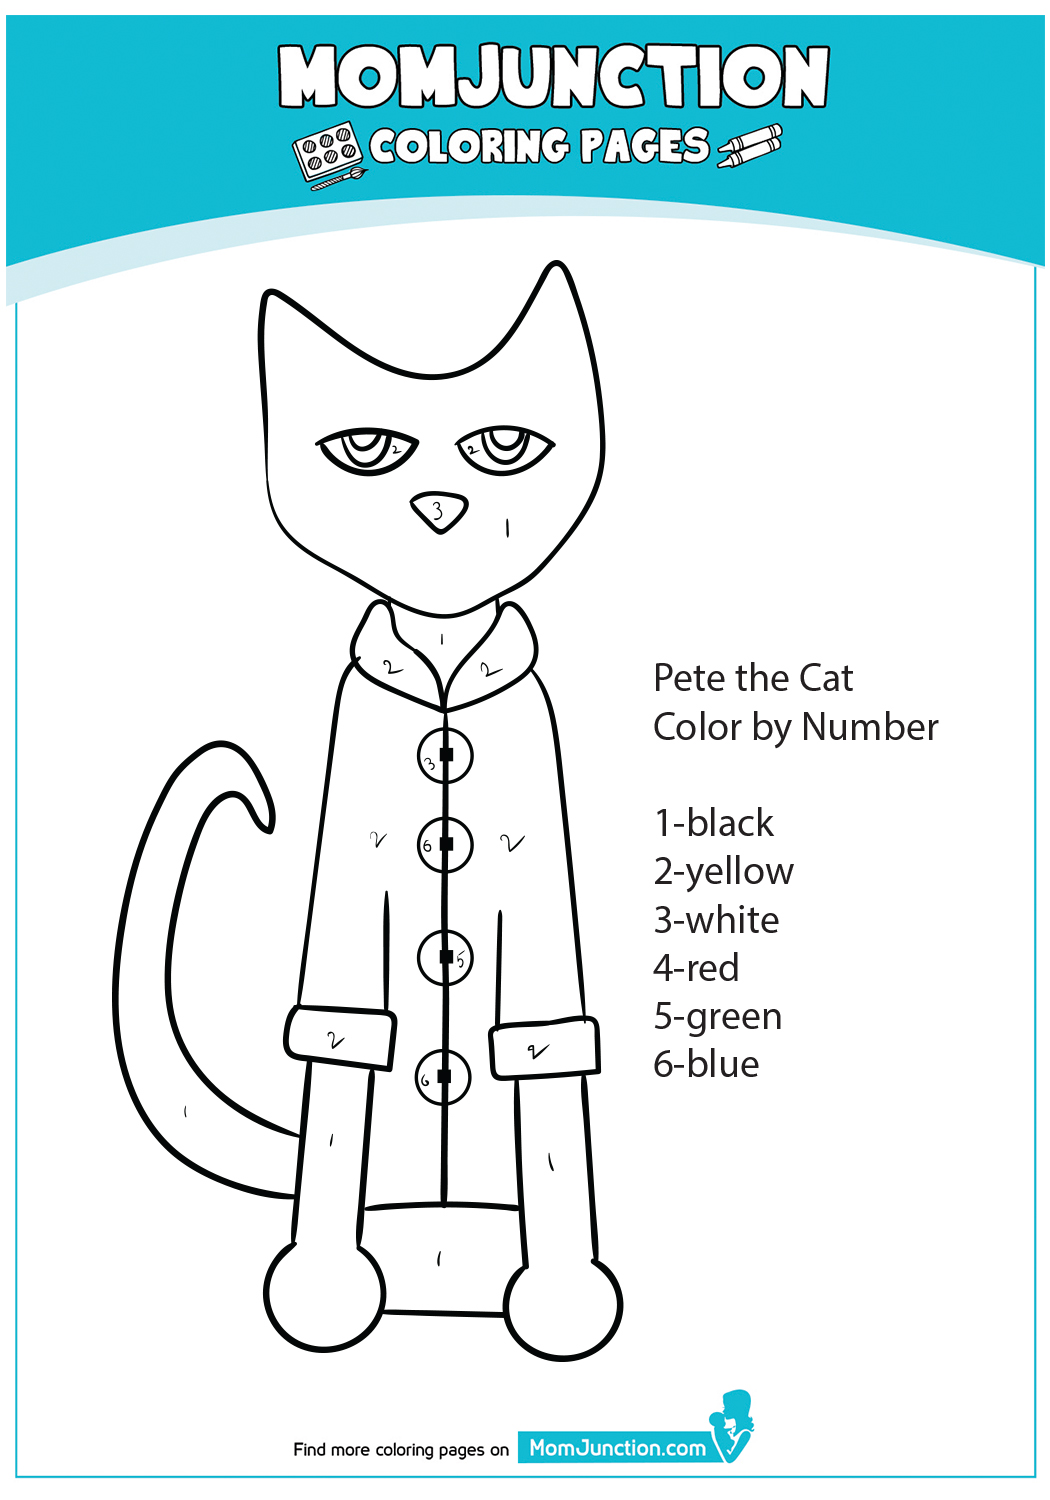 PeteButtons-ColorbyNumber